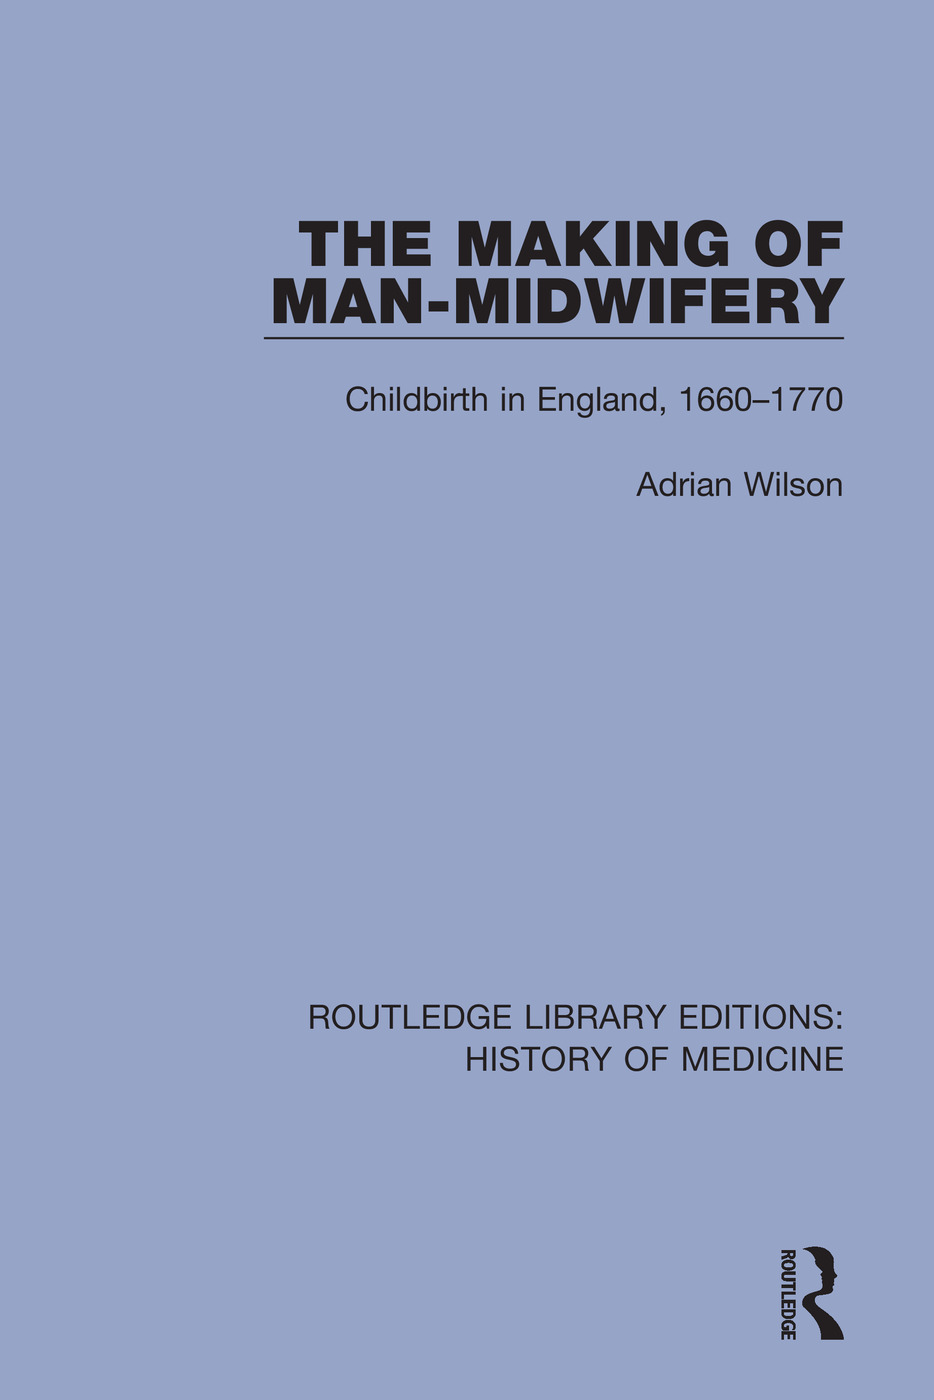 The Making of Man-Midwifery: Childbirth in England, 1660-1770 book cover